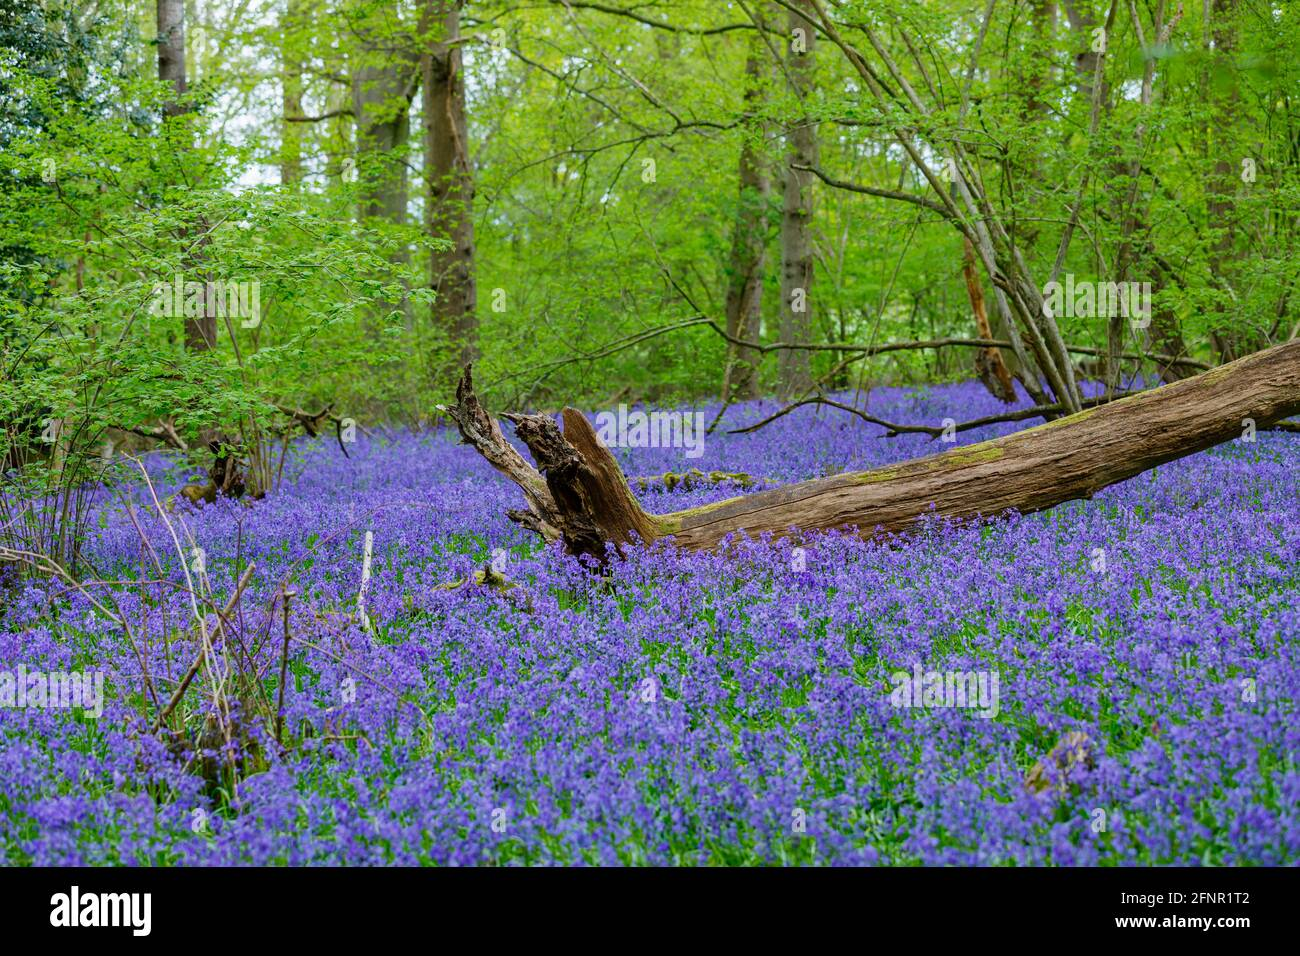 Fallen tree stump in blue English bluebells (Hyacinthoides non-scripta) flowering in woodland in spring in Surrey, south-east England Stock Photo